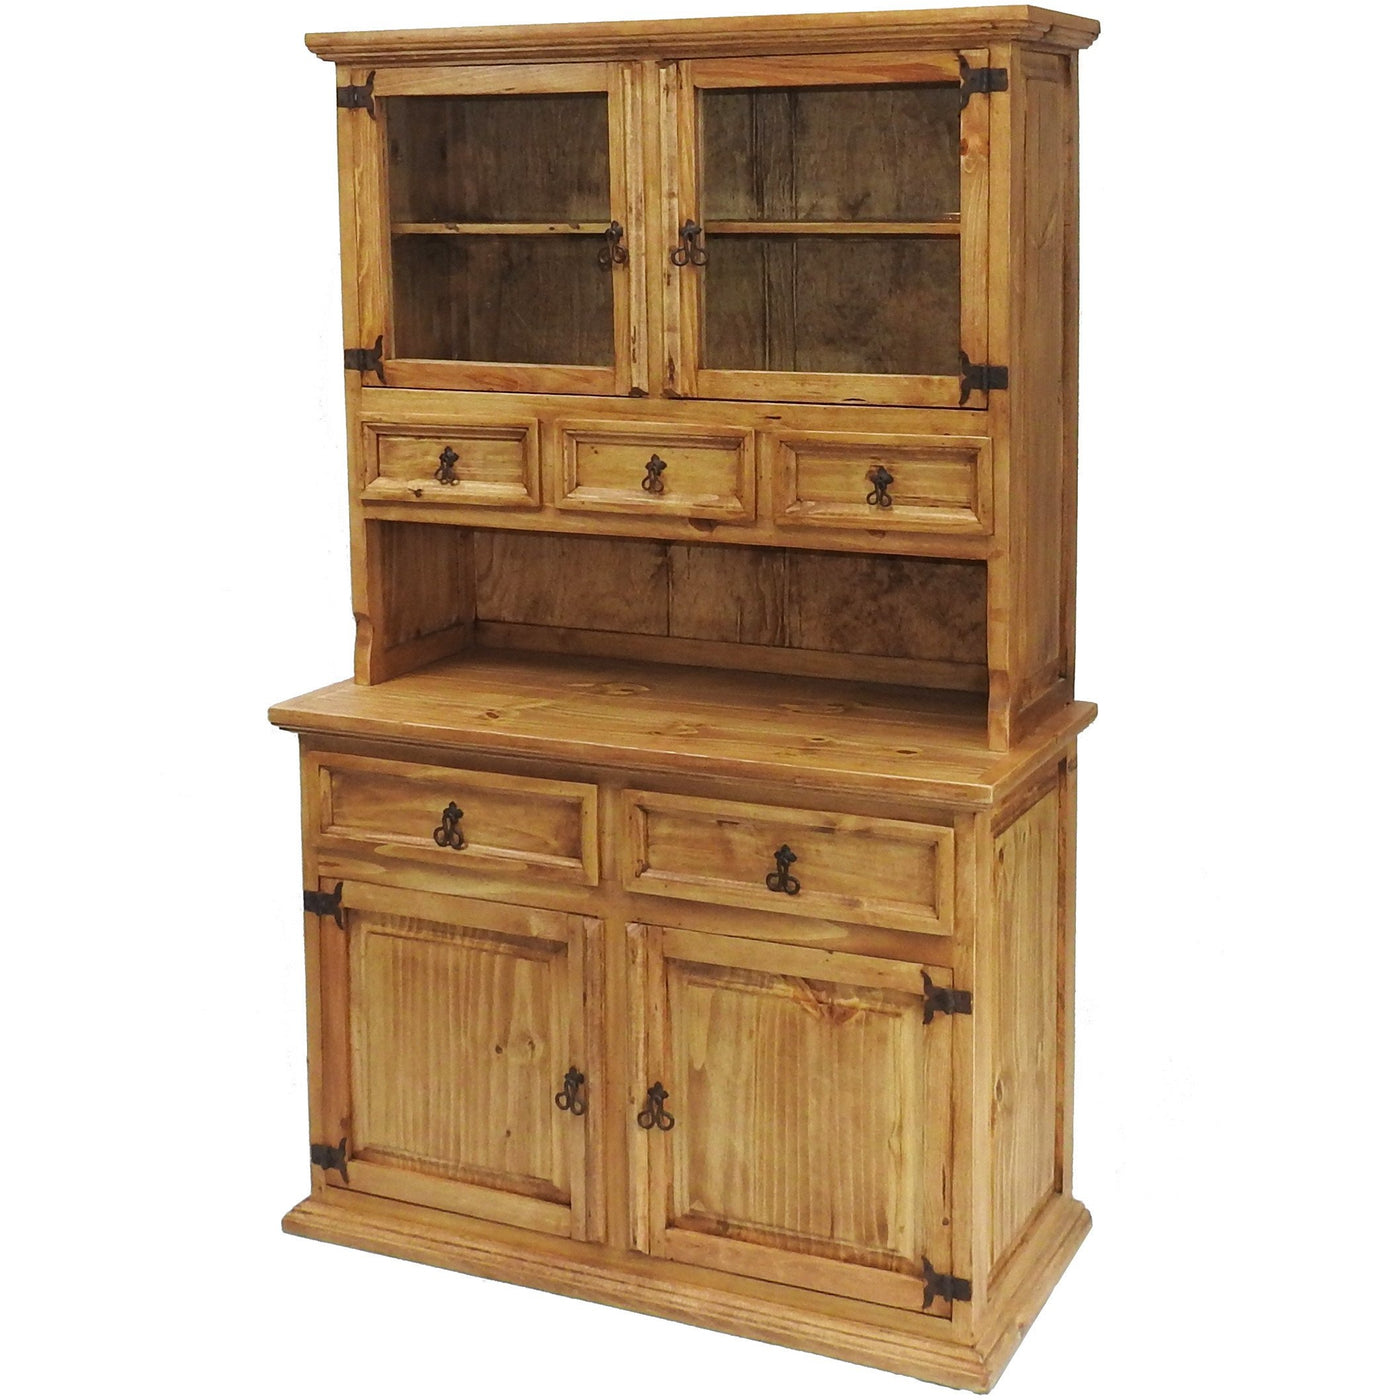 Traditional Small Hutch Buffet Rustics For Less